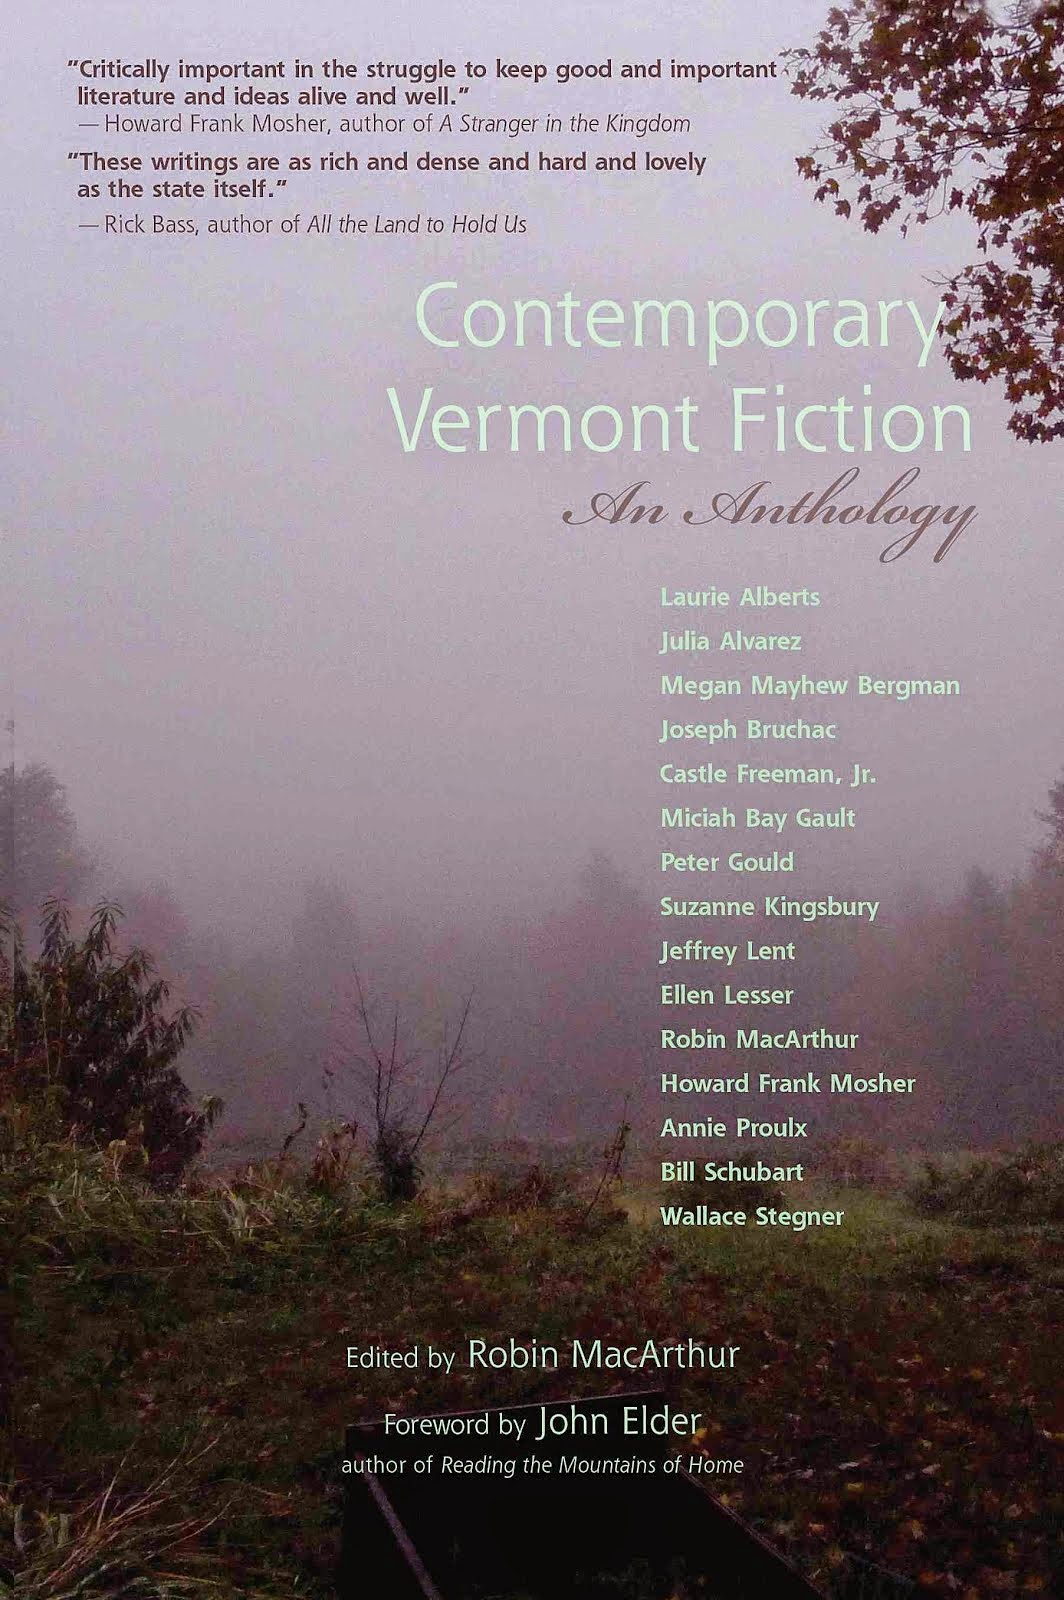 Contemporary Vermont Fiction